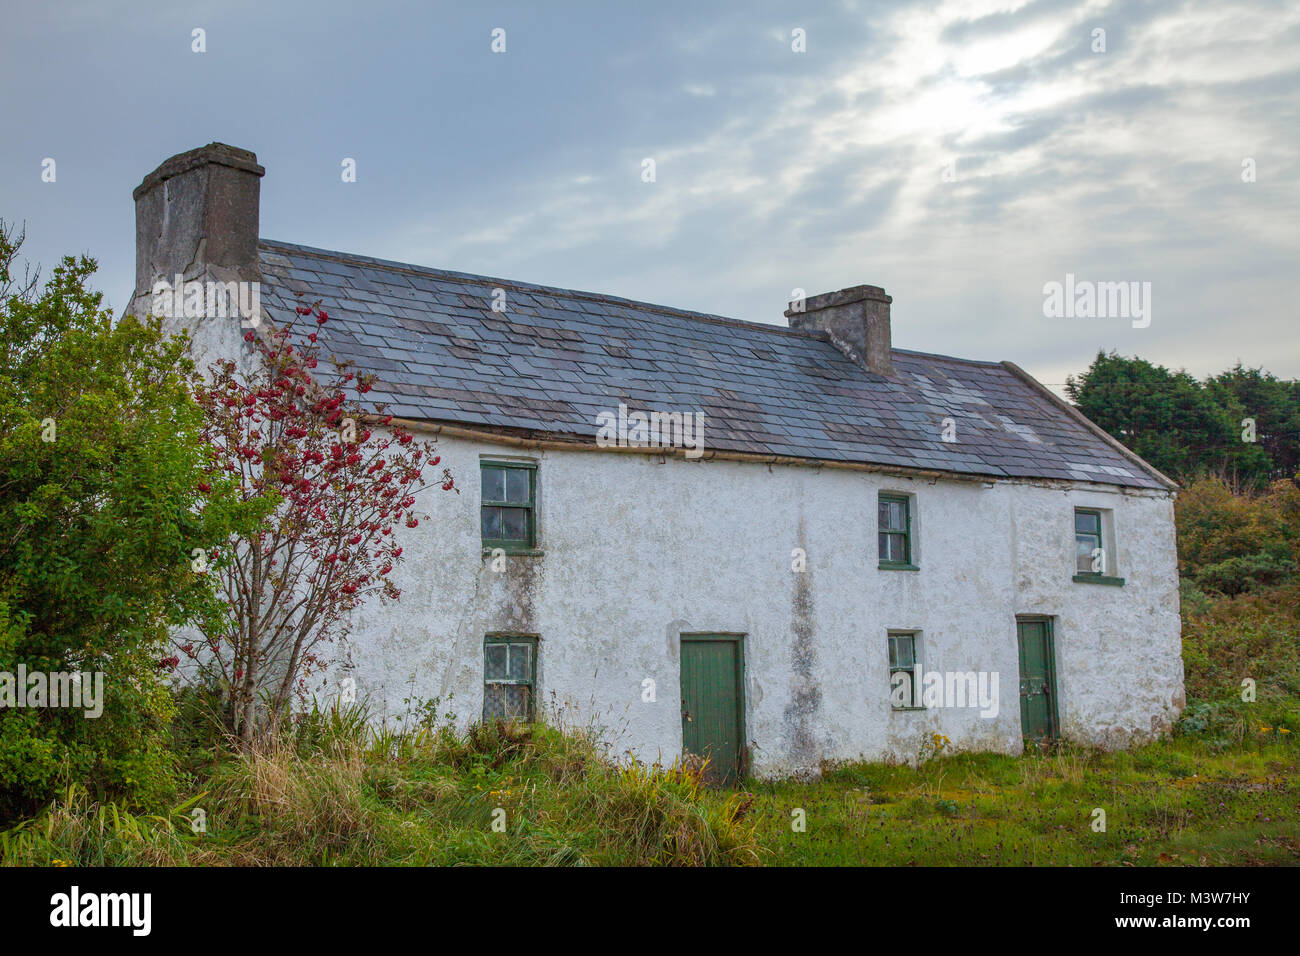 Traditional Irish cottage, Bunbeg, Gweedore, County Donegal, Ireland. - Stock Image